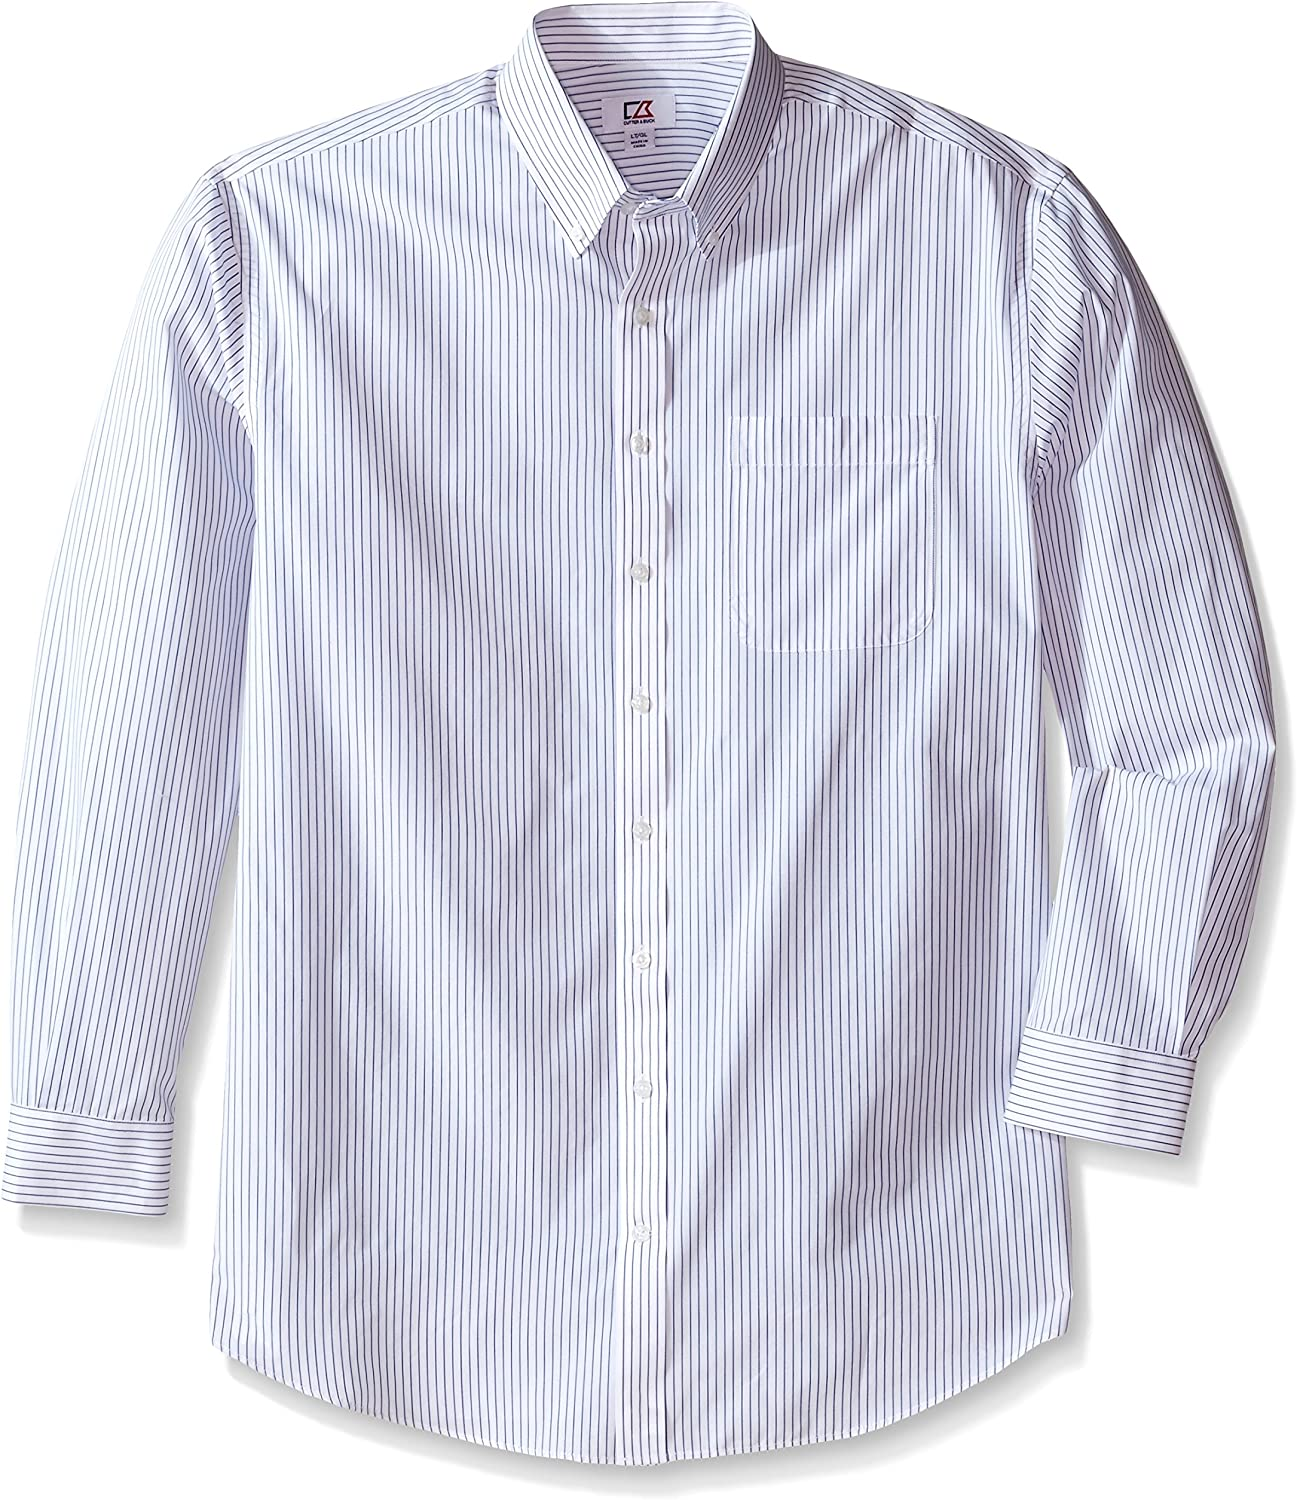 Cutter & Buck Men's Big and Tall Long Sleeve Epic Easy Care Pin-Stripe, White/French Blue, 2X/Big